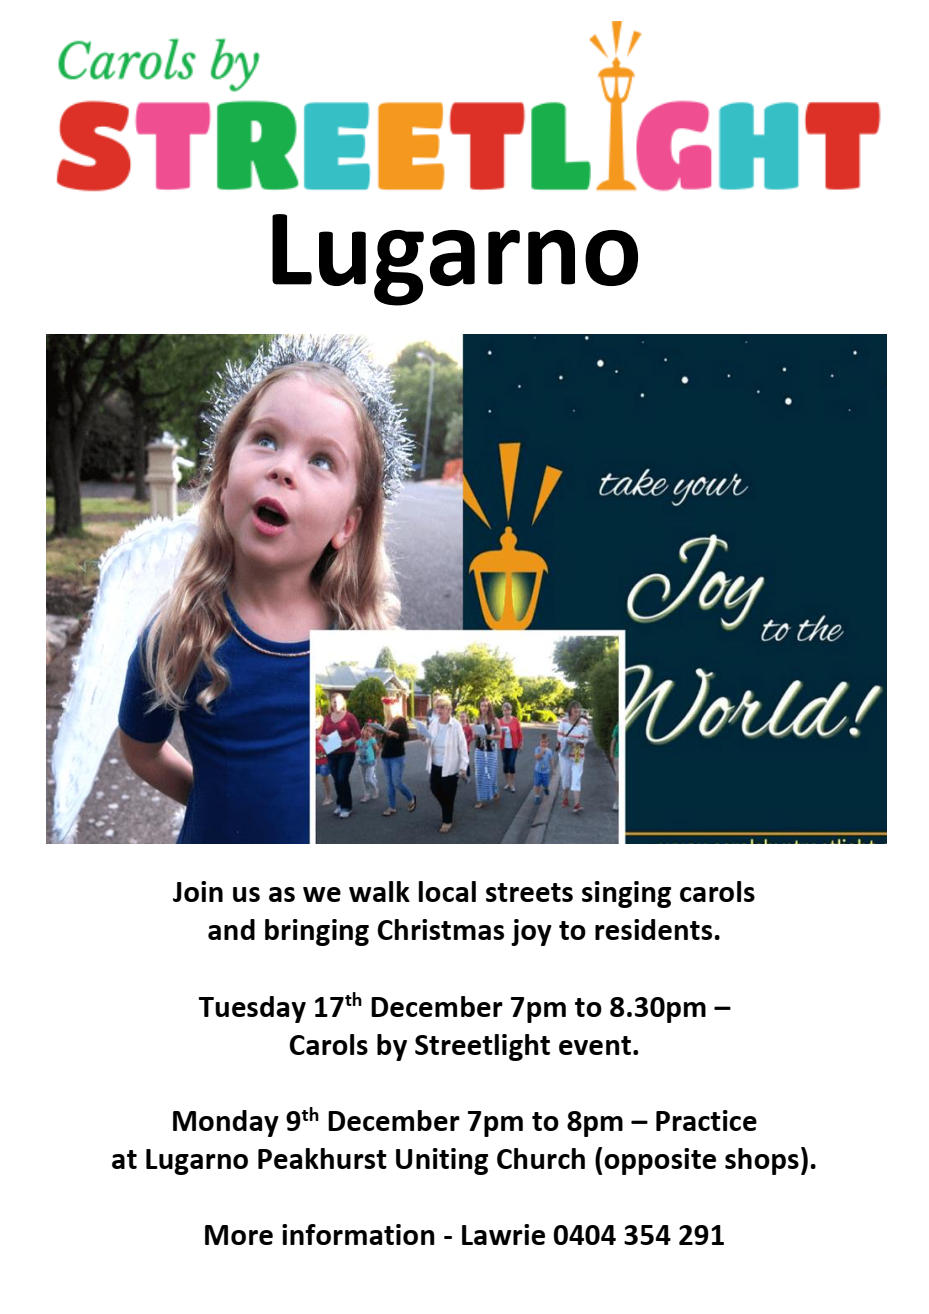 Carols by Streetlight - Event @ Lugarno Peakhurst Uniting Church